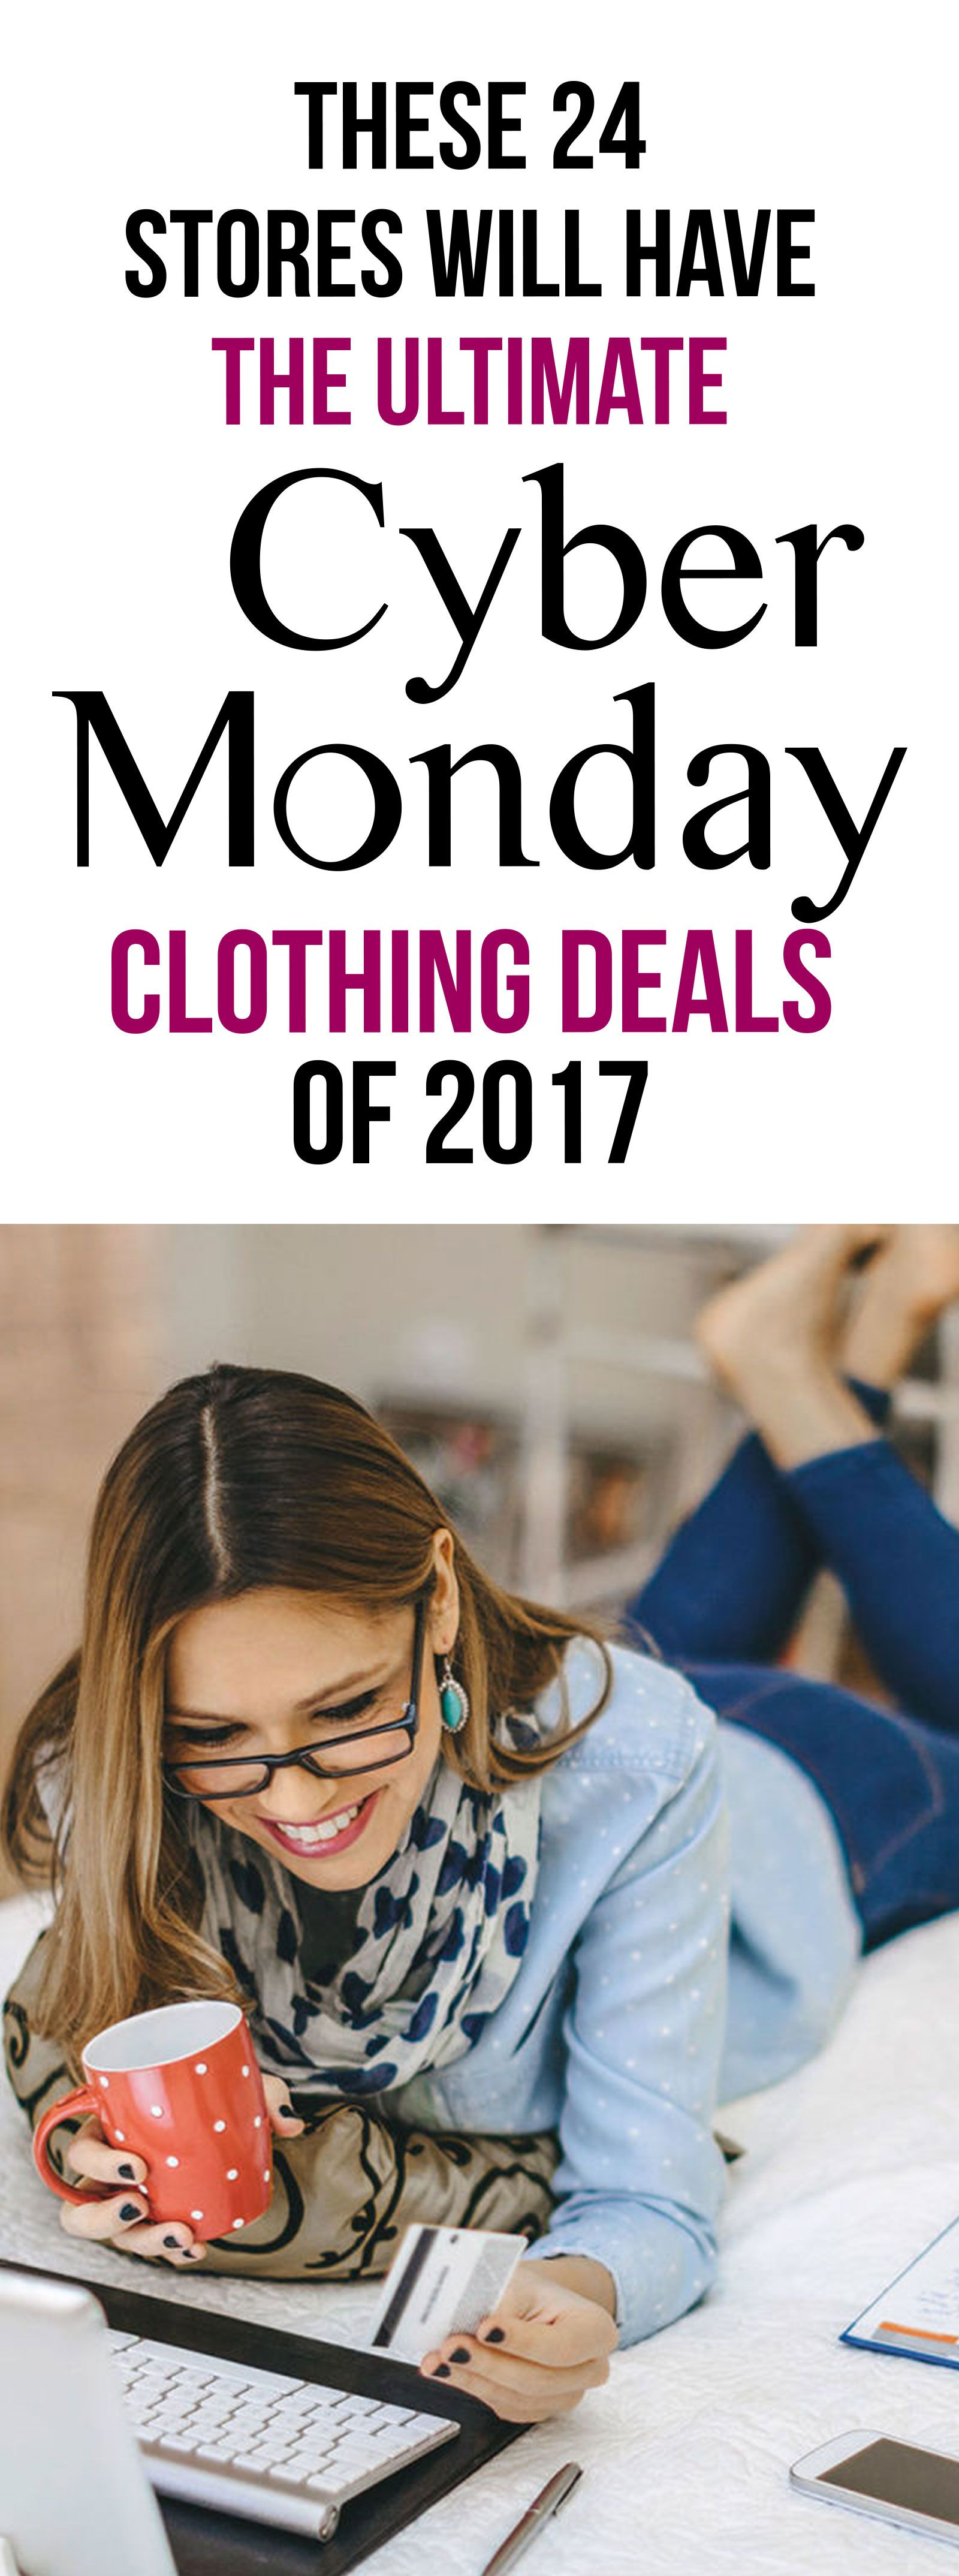 The Best Clothing Deals On Cyber Monday This Year Cybermonday Clothing Deals Clothing Deals Cyber Monday Shopping Cyber Monday